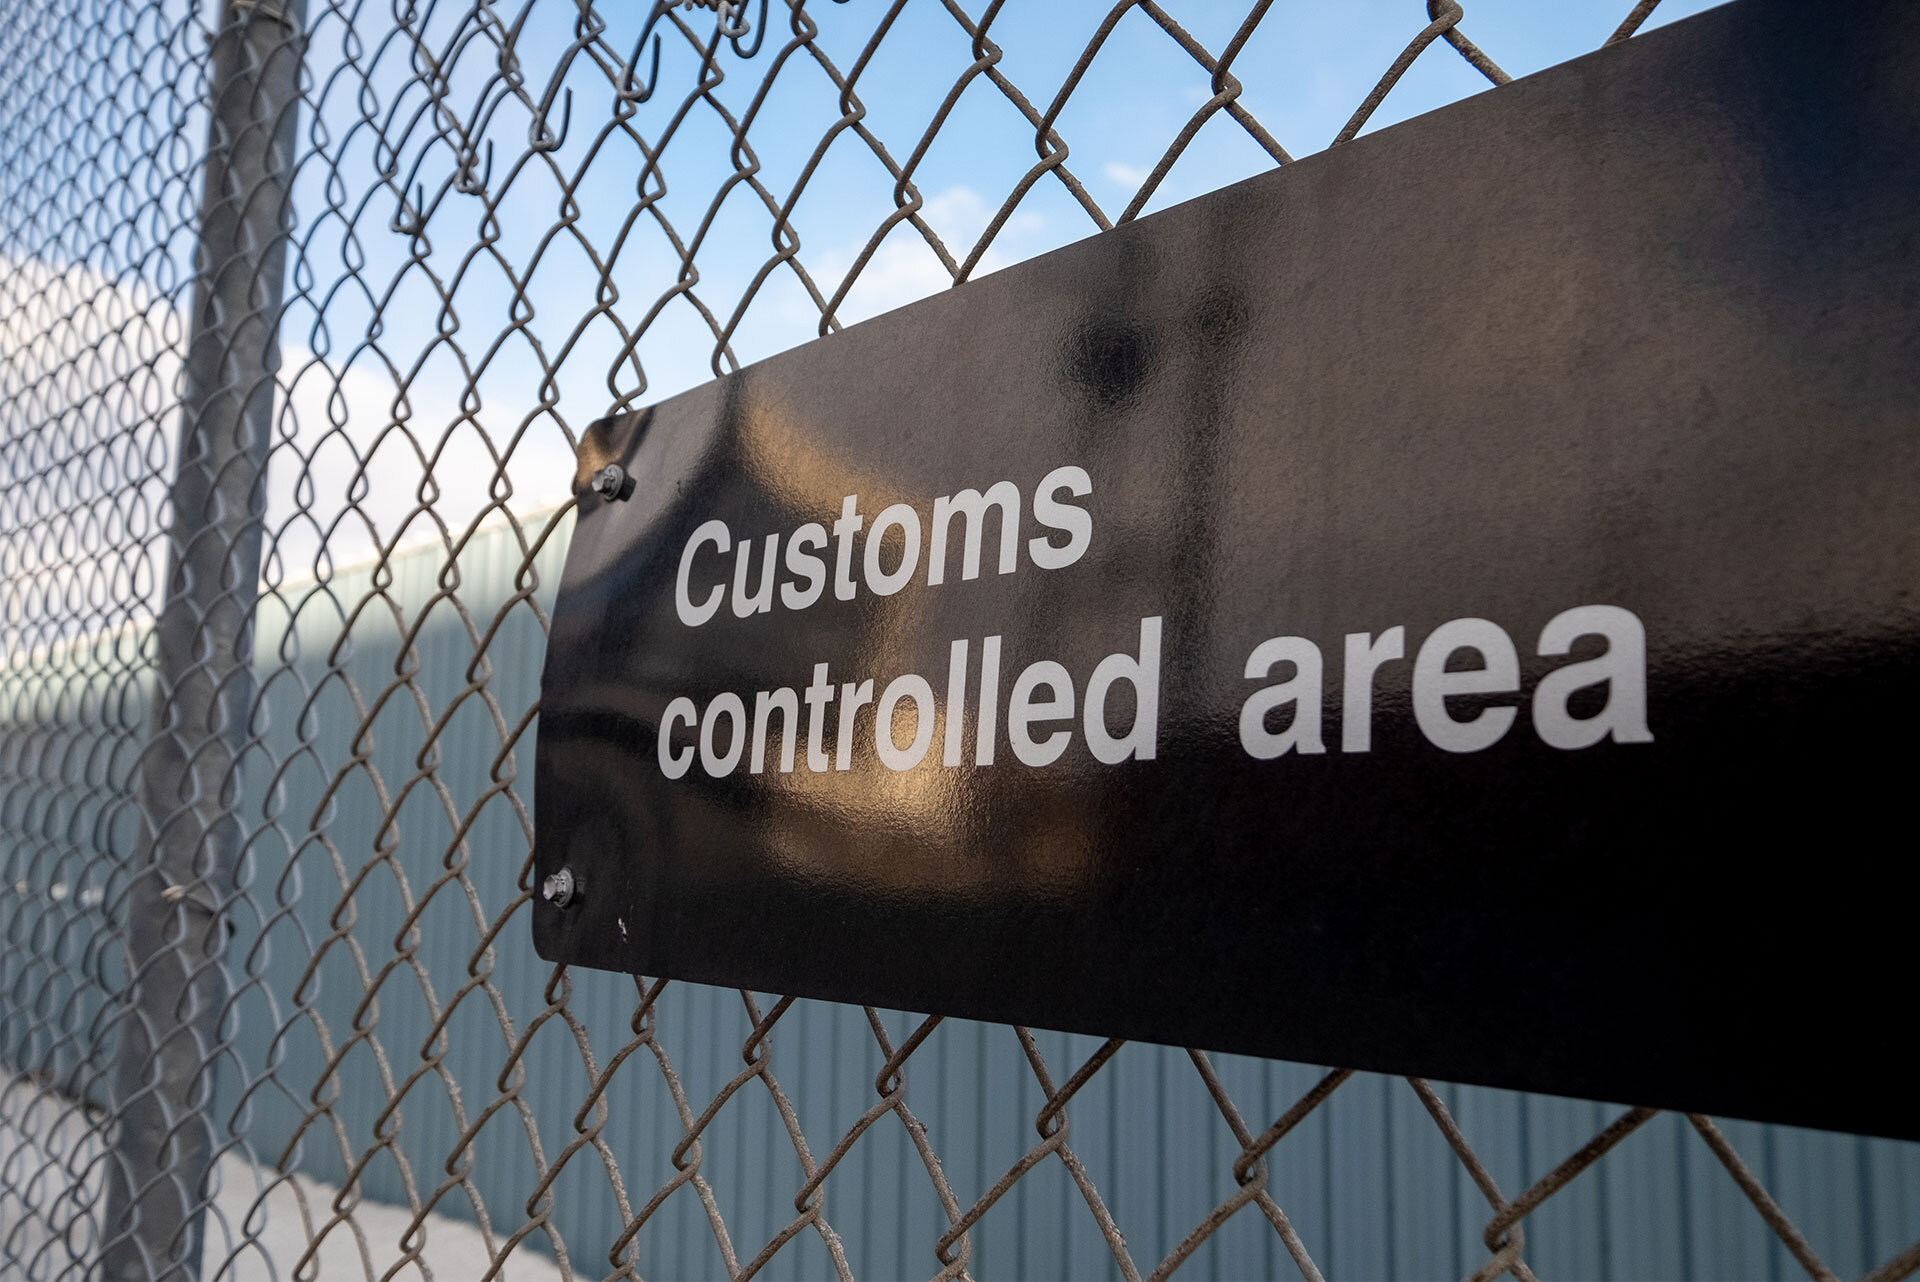 Customs controlled area board